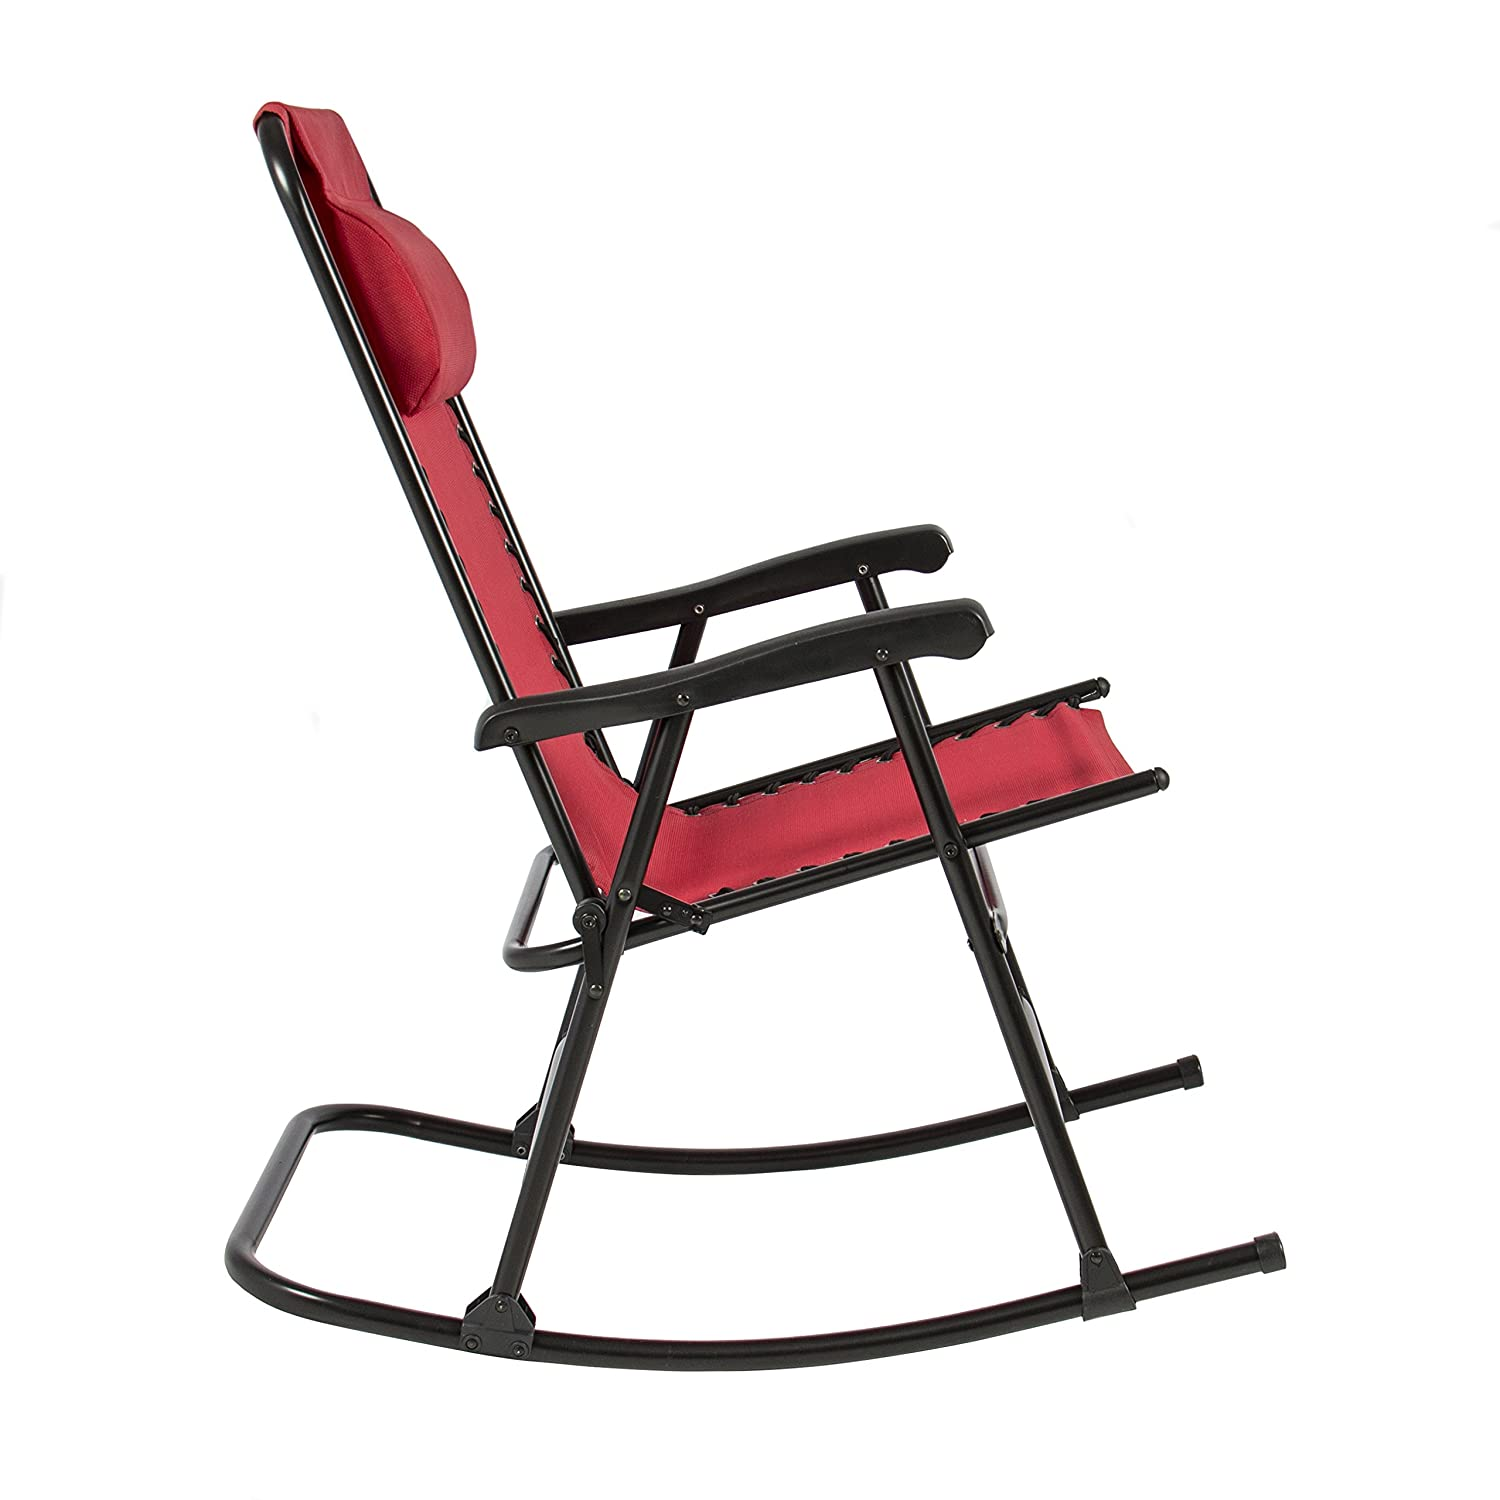 Amazon.com : Best Choice Products Folding Rocking Chair Foldable Rocker  Outdoor Patio Furniture Red : Patio, Lawn U0026 Garden